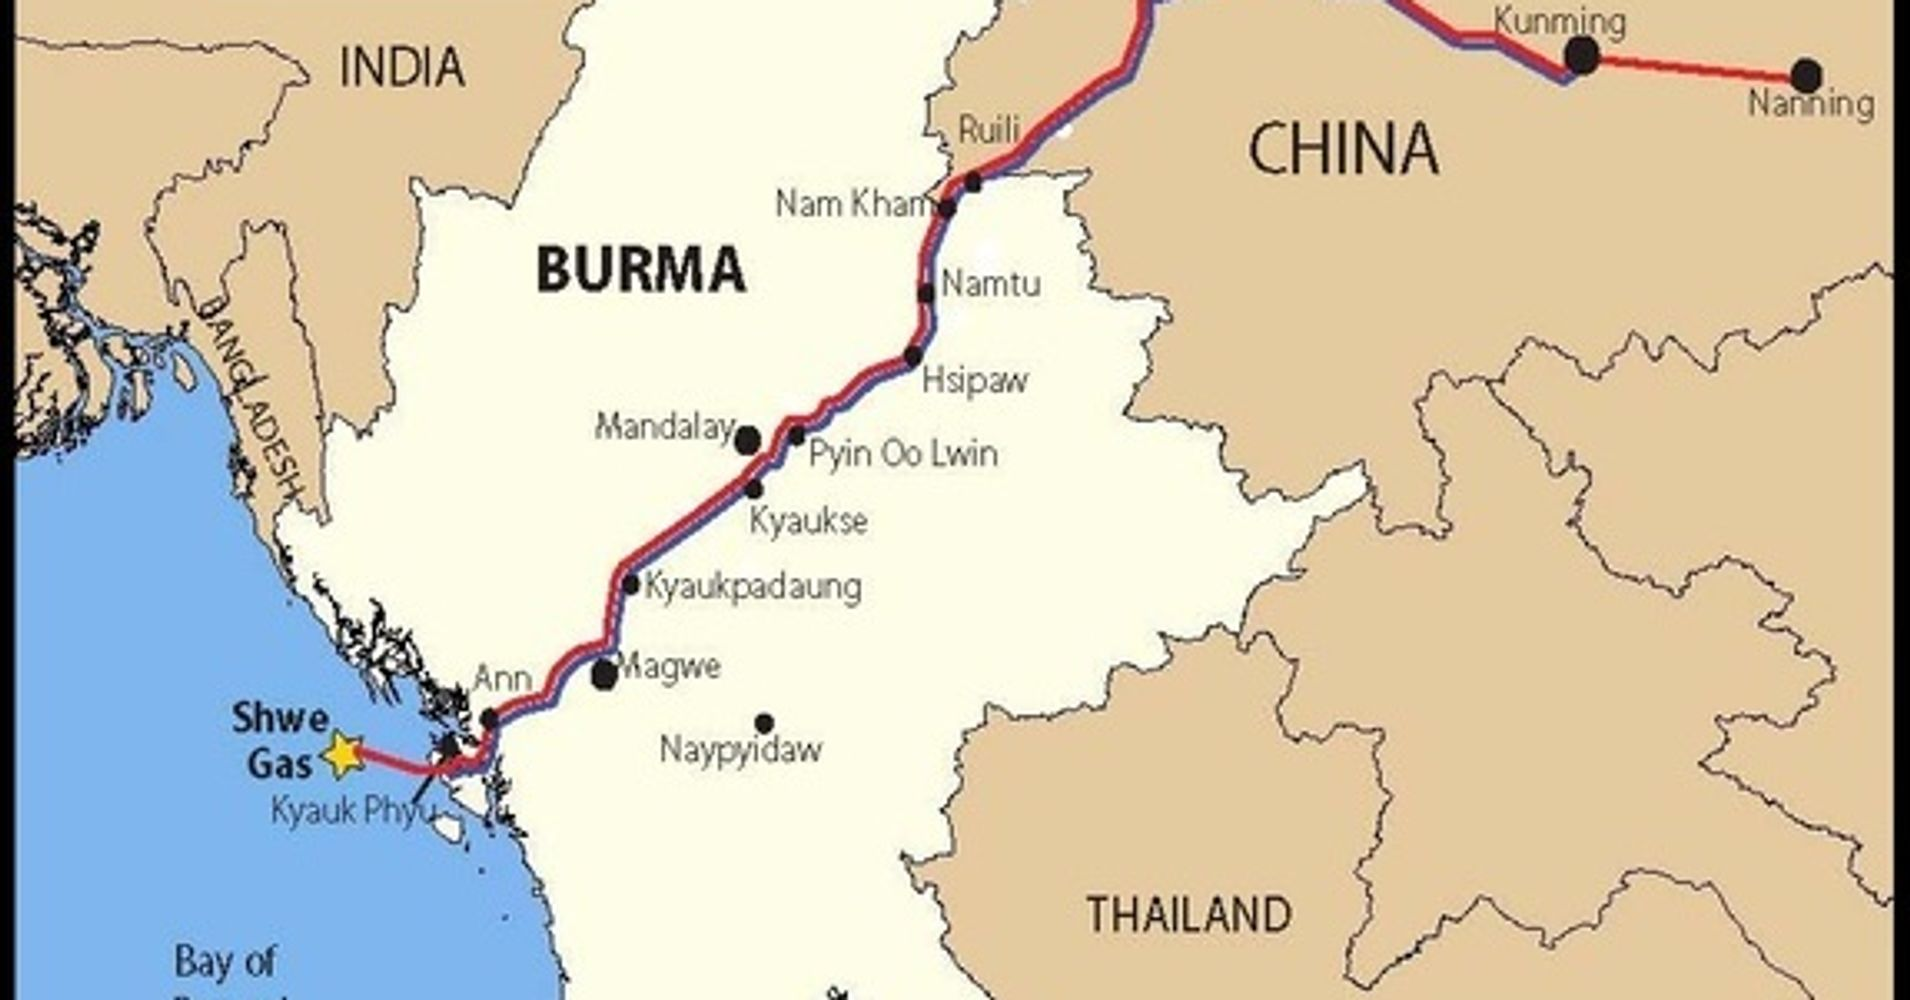 the failure and rebirth of burmese nationalism Burma-specific sanctions began following the burmese military's violent suppression of popular protests in 1988, and have continued through several subsequent periods in which congress perceived major human rights violations in burma.